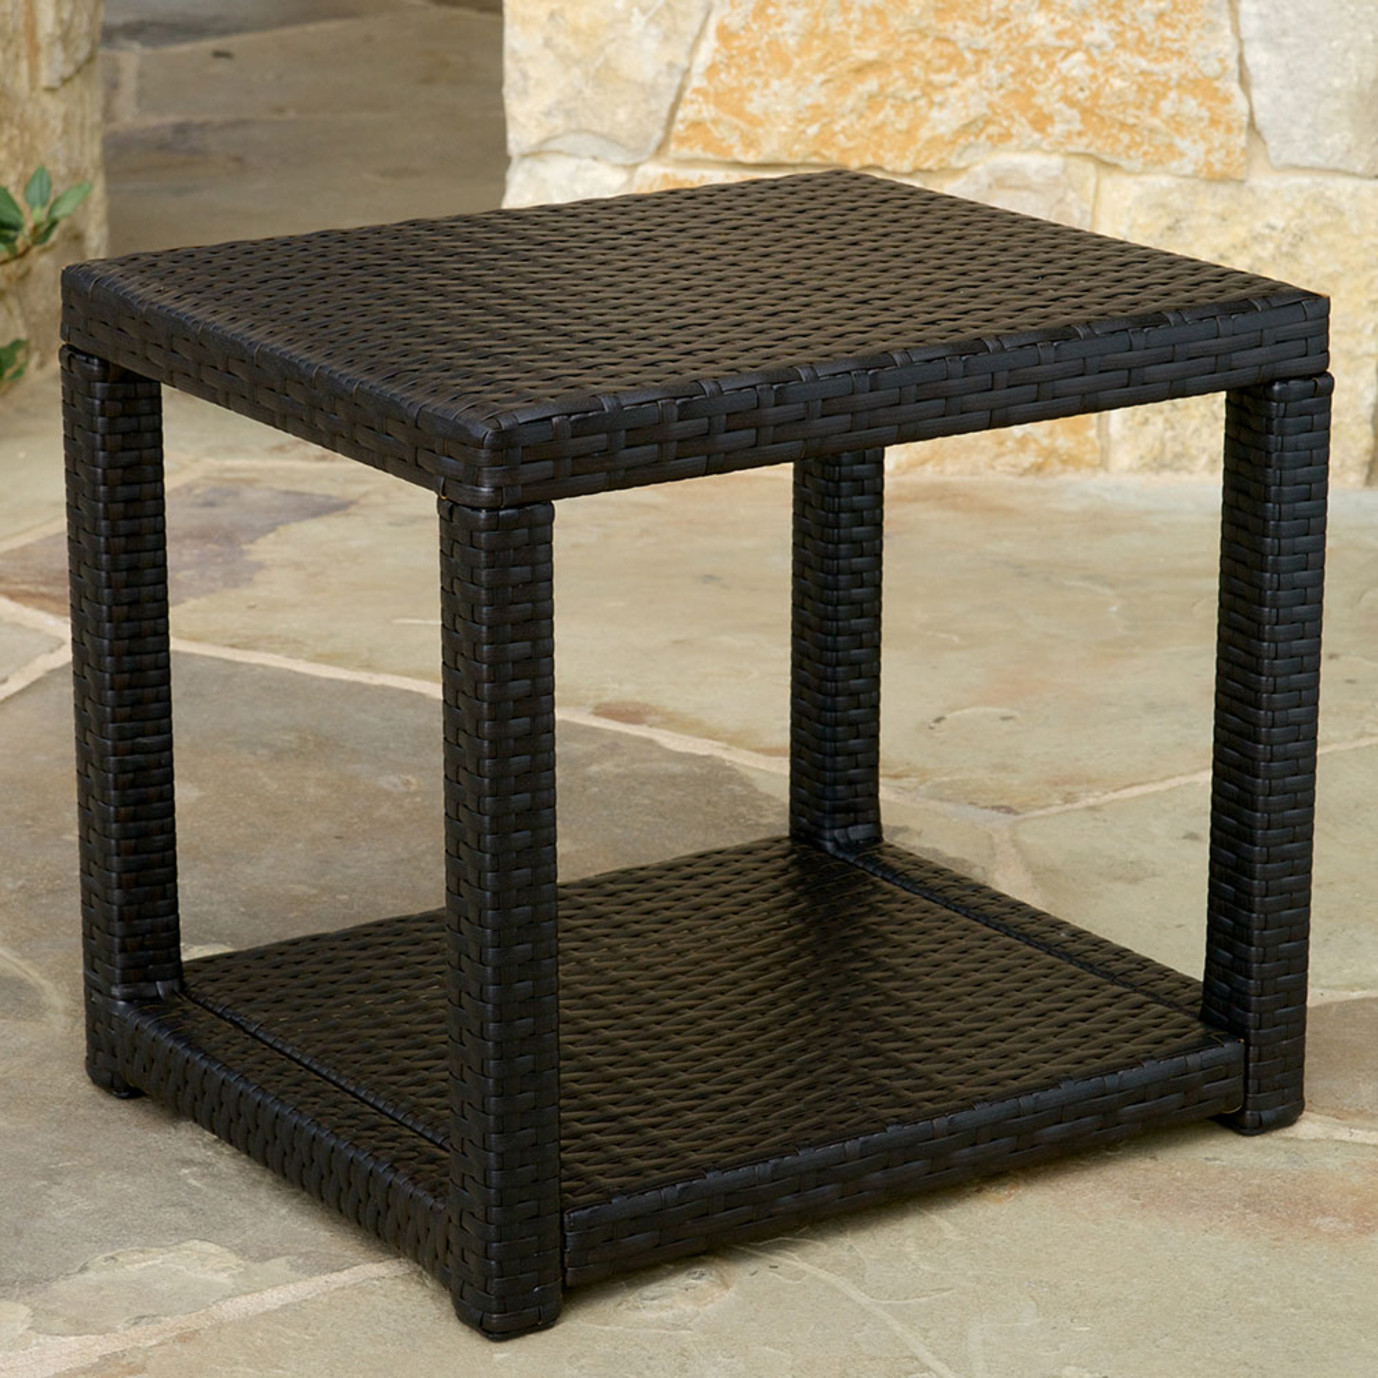 Portofino Comfort 22x18 Side Table - Espresso